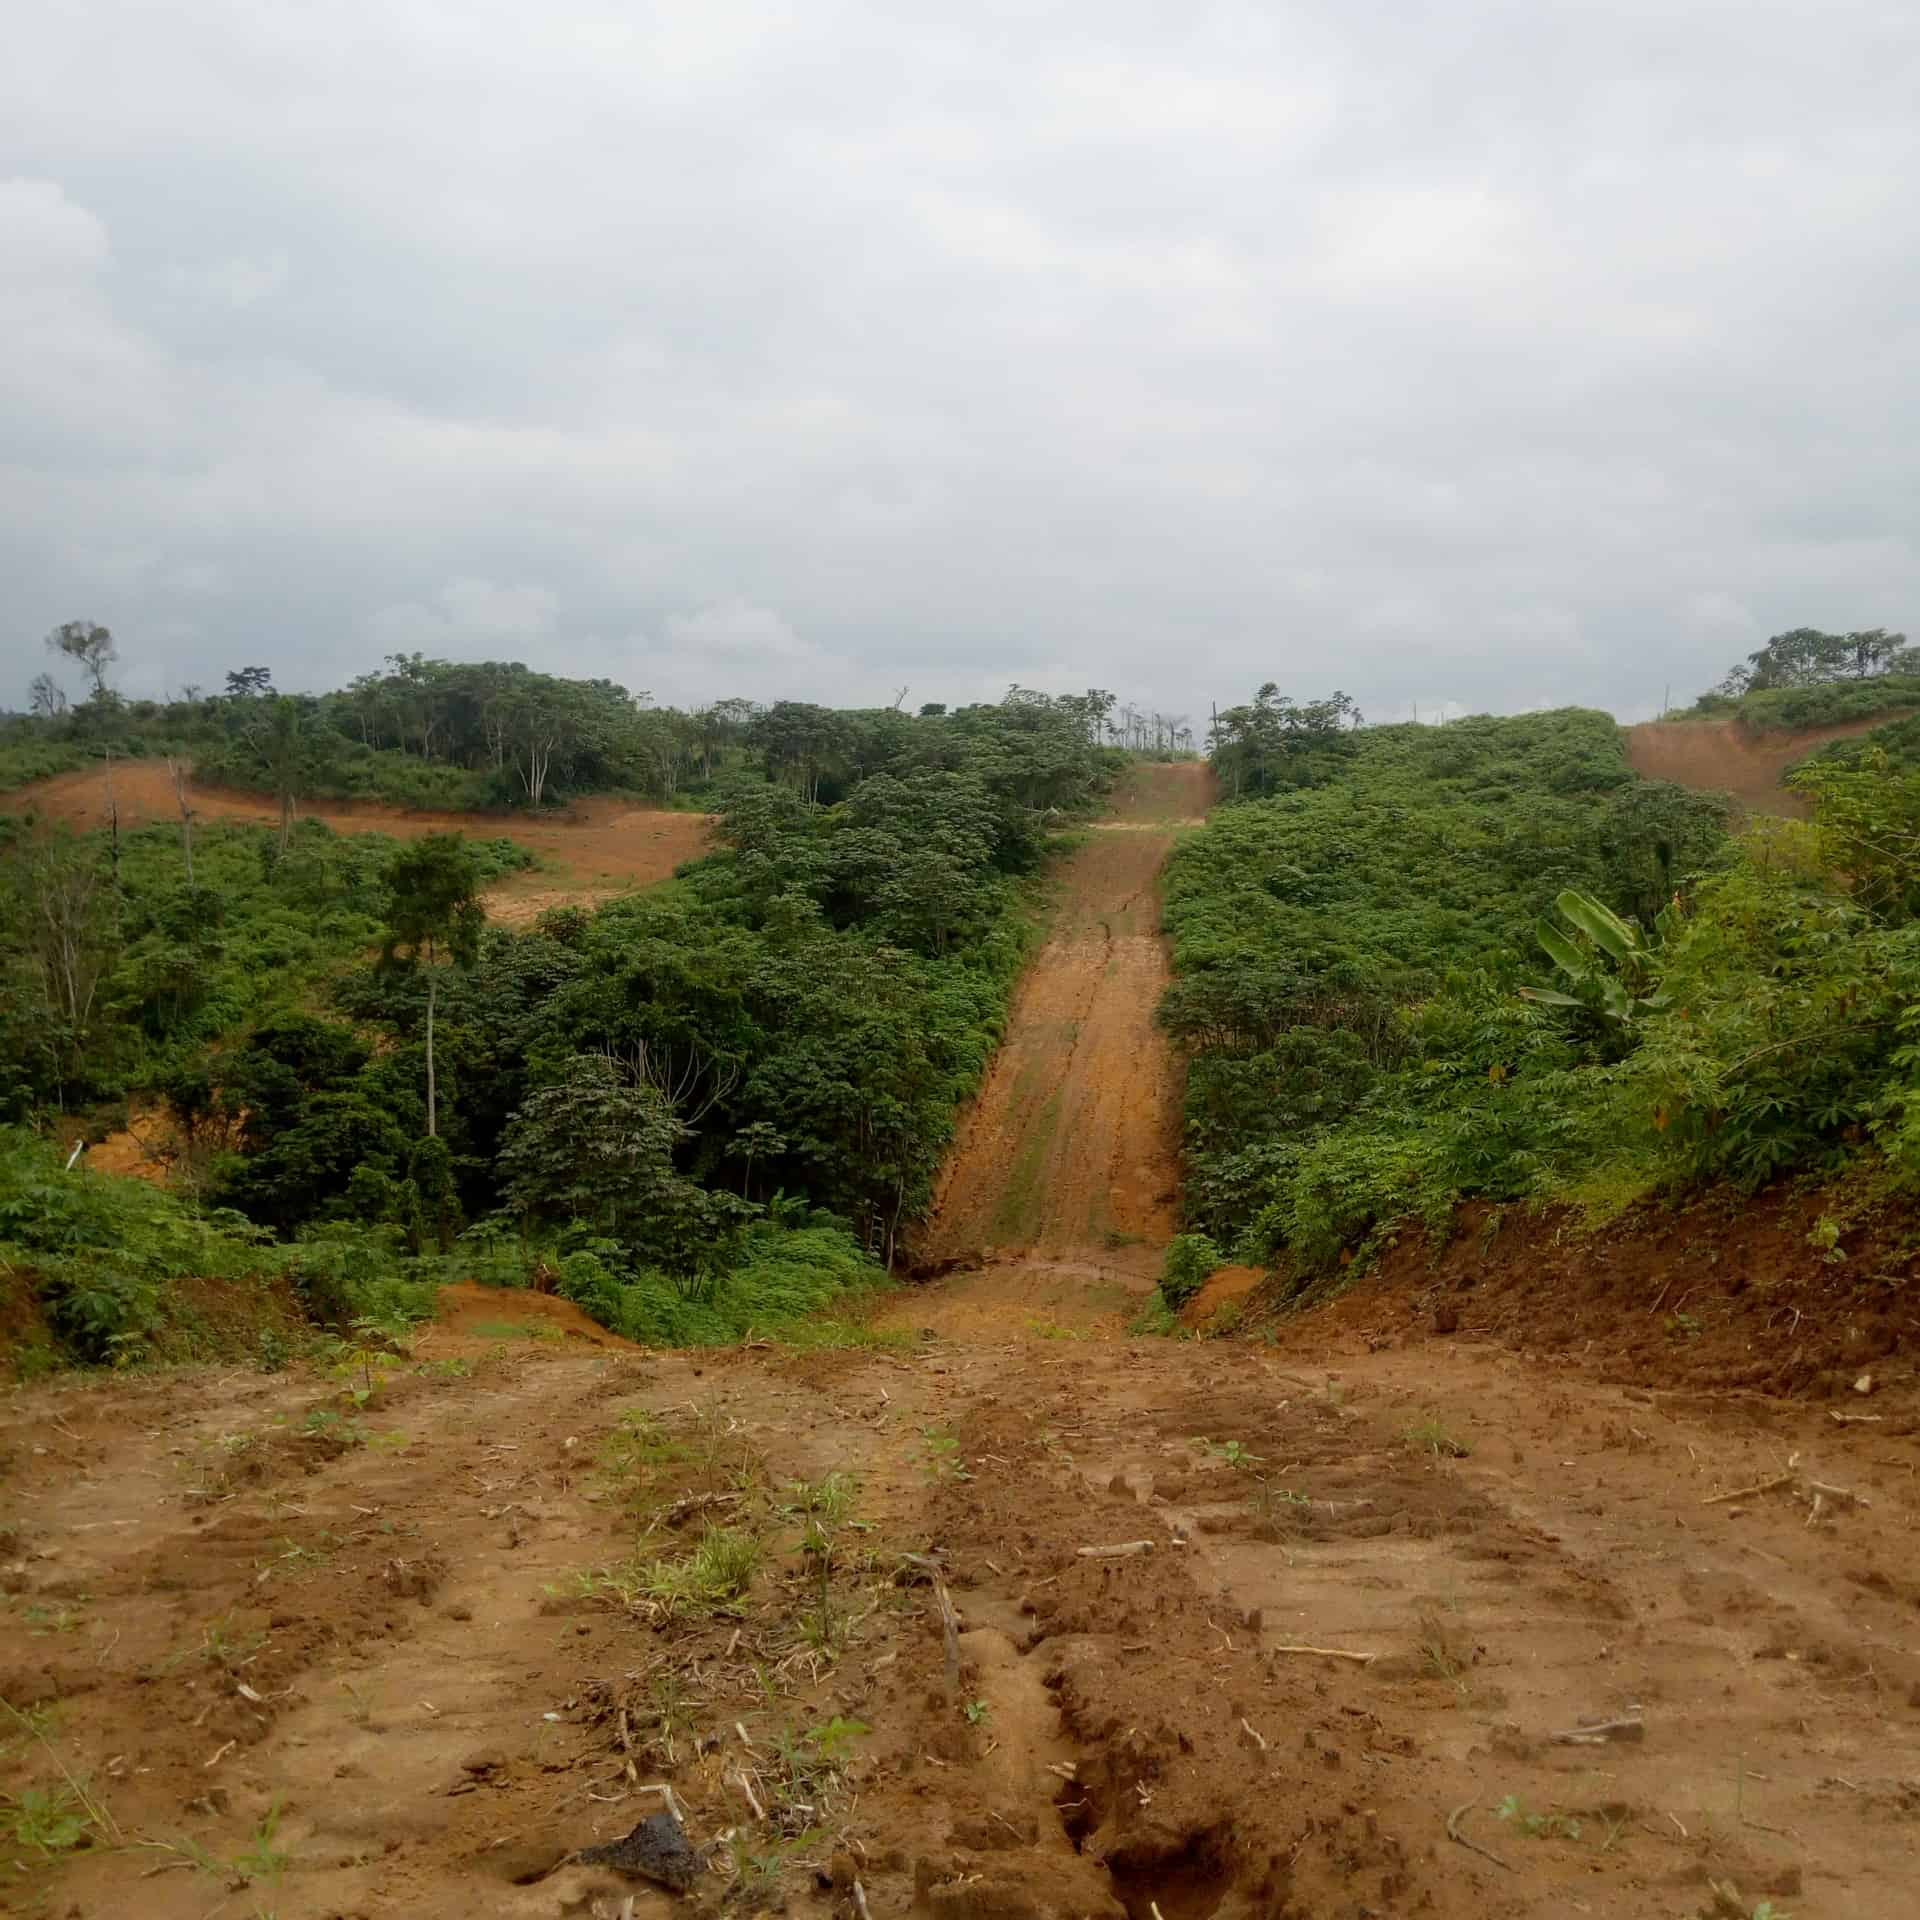 Land for sale at Douala, PK 27, Pk27 - 40000 m2 - 6 500 000 FCFA